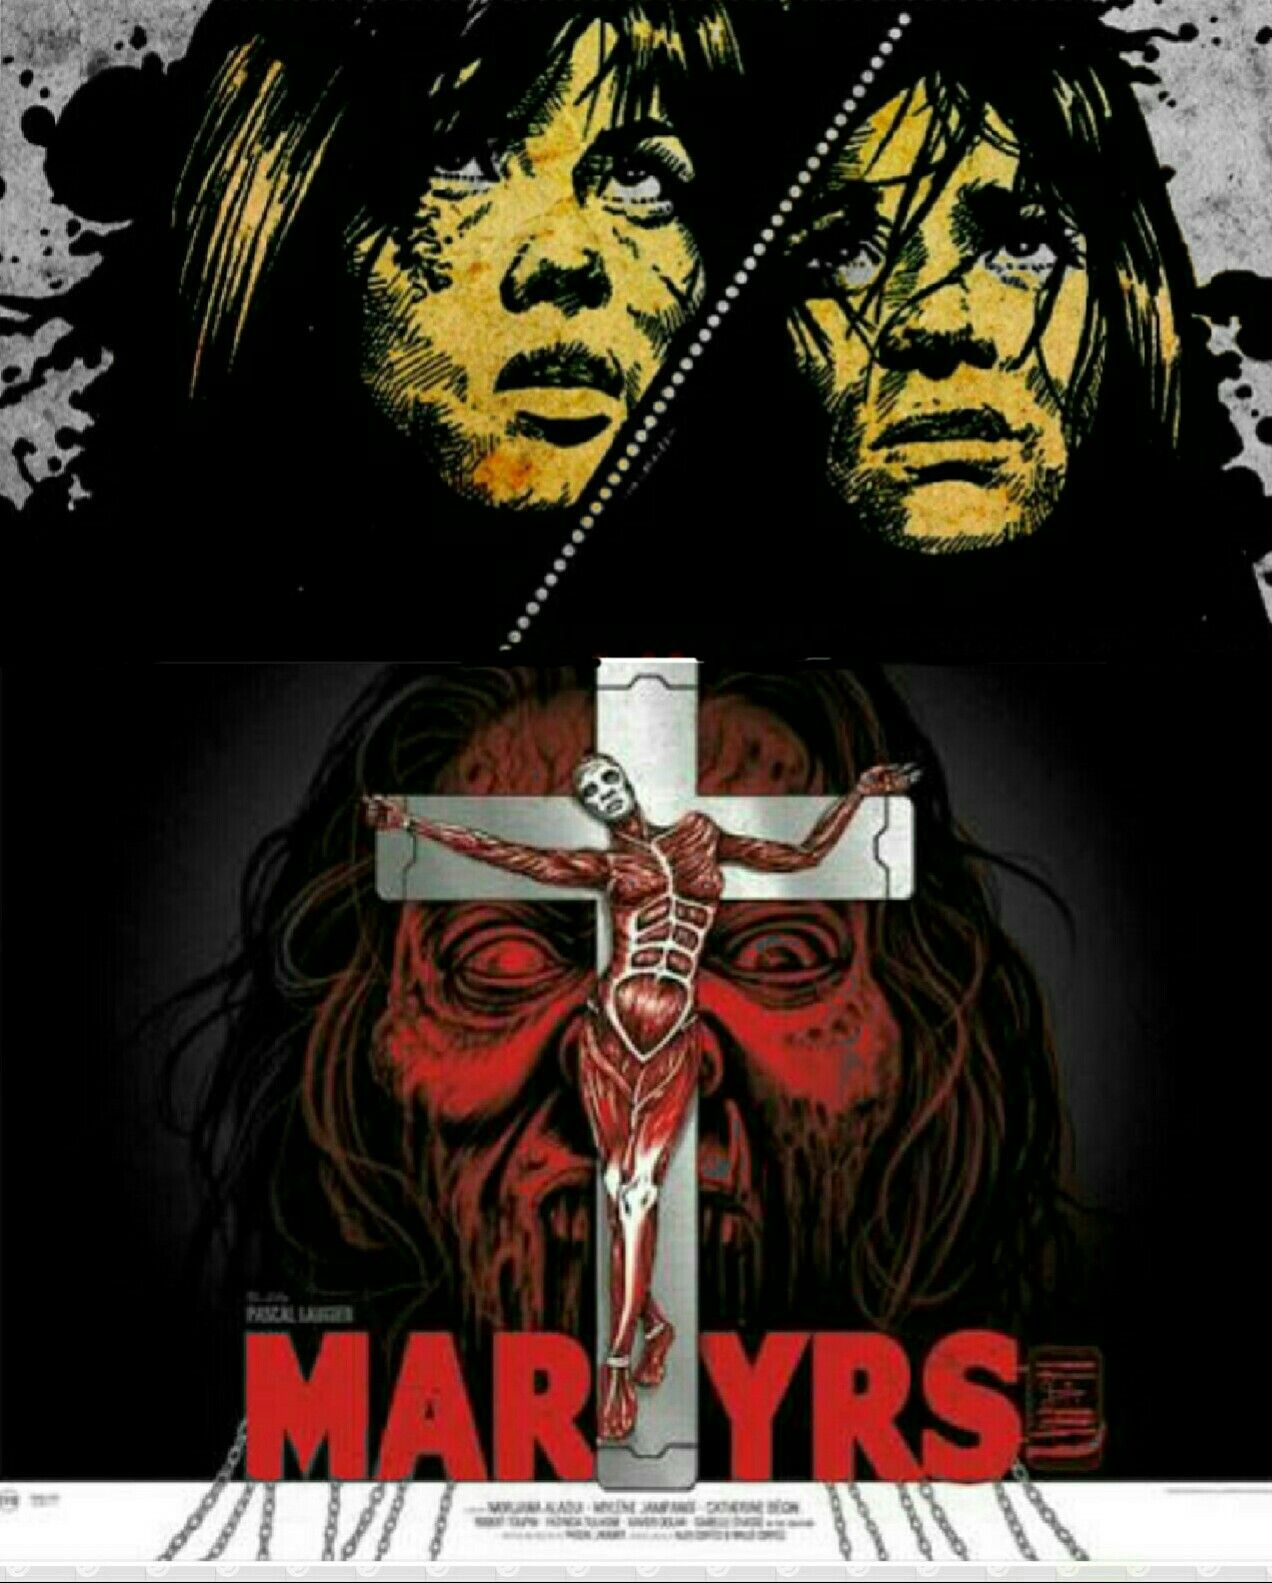 199 Martyrs 2008 Straight Chilling Horror Movie Review Podcast Podtail